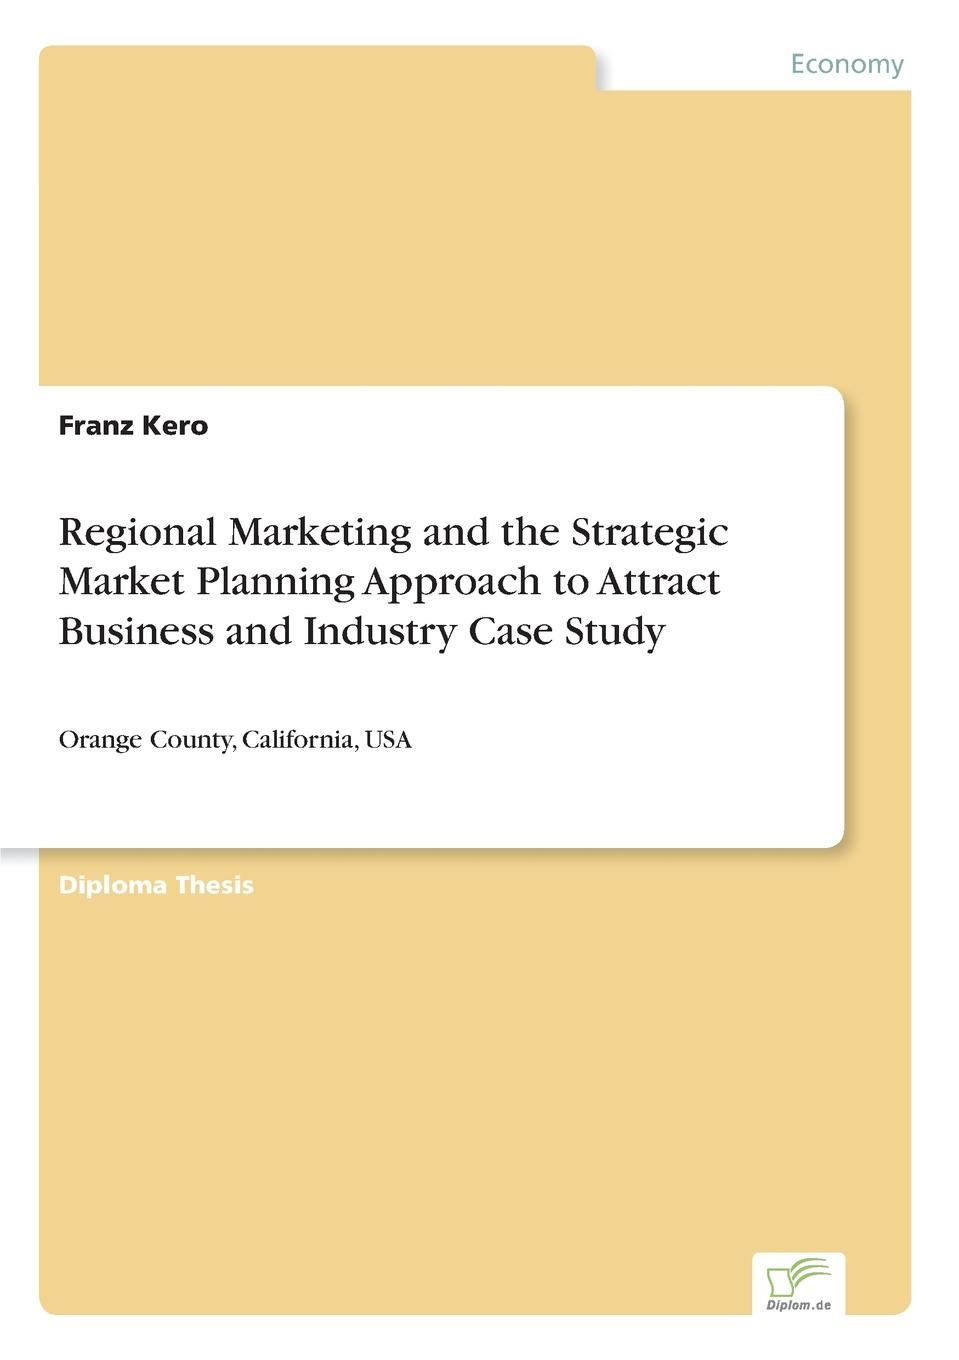 Franz Kero Regional Marketing and the Strategic Market Planning Approach to Attract Business and Industry Case Study suzanne morse w smart communities how citizens and local leaders can use strategic thinking to build a brighter future